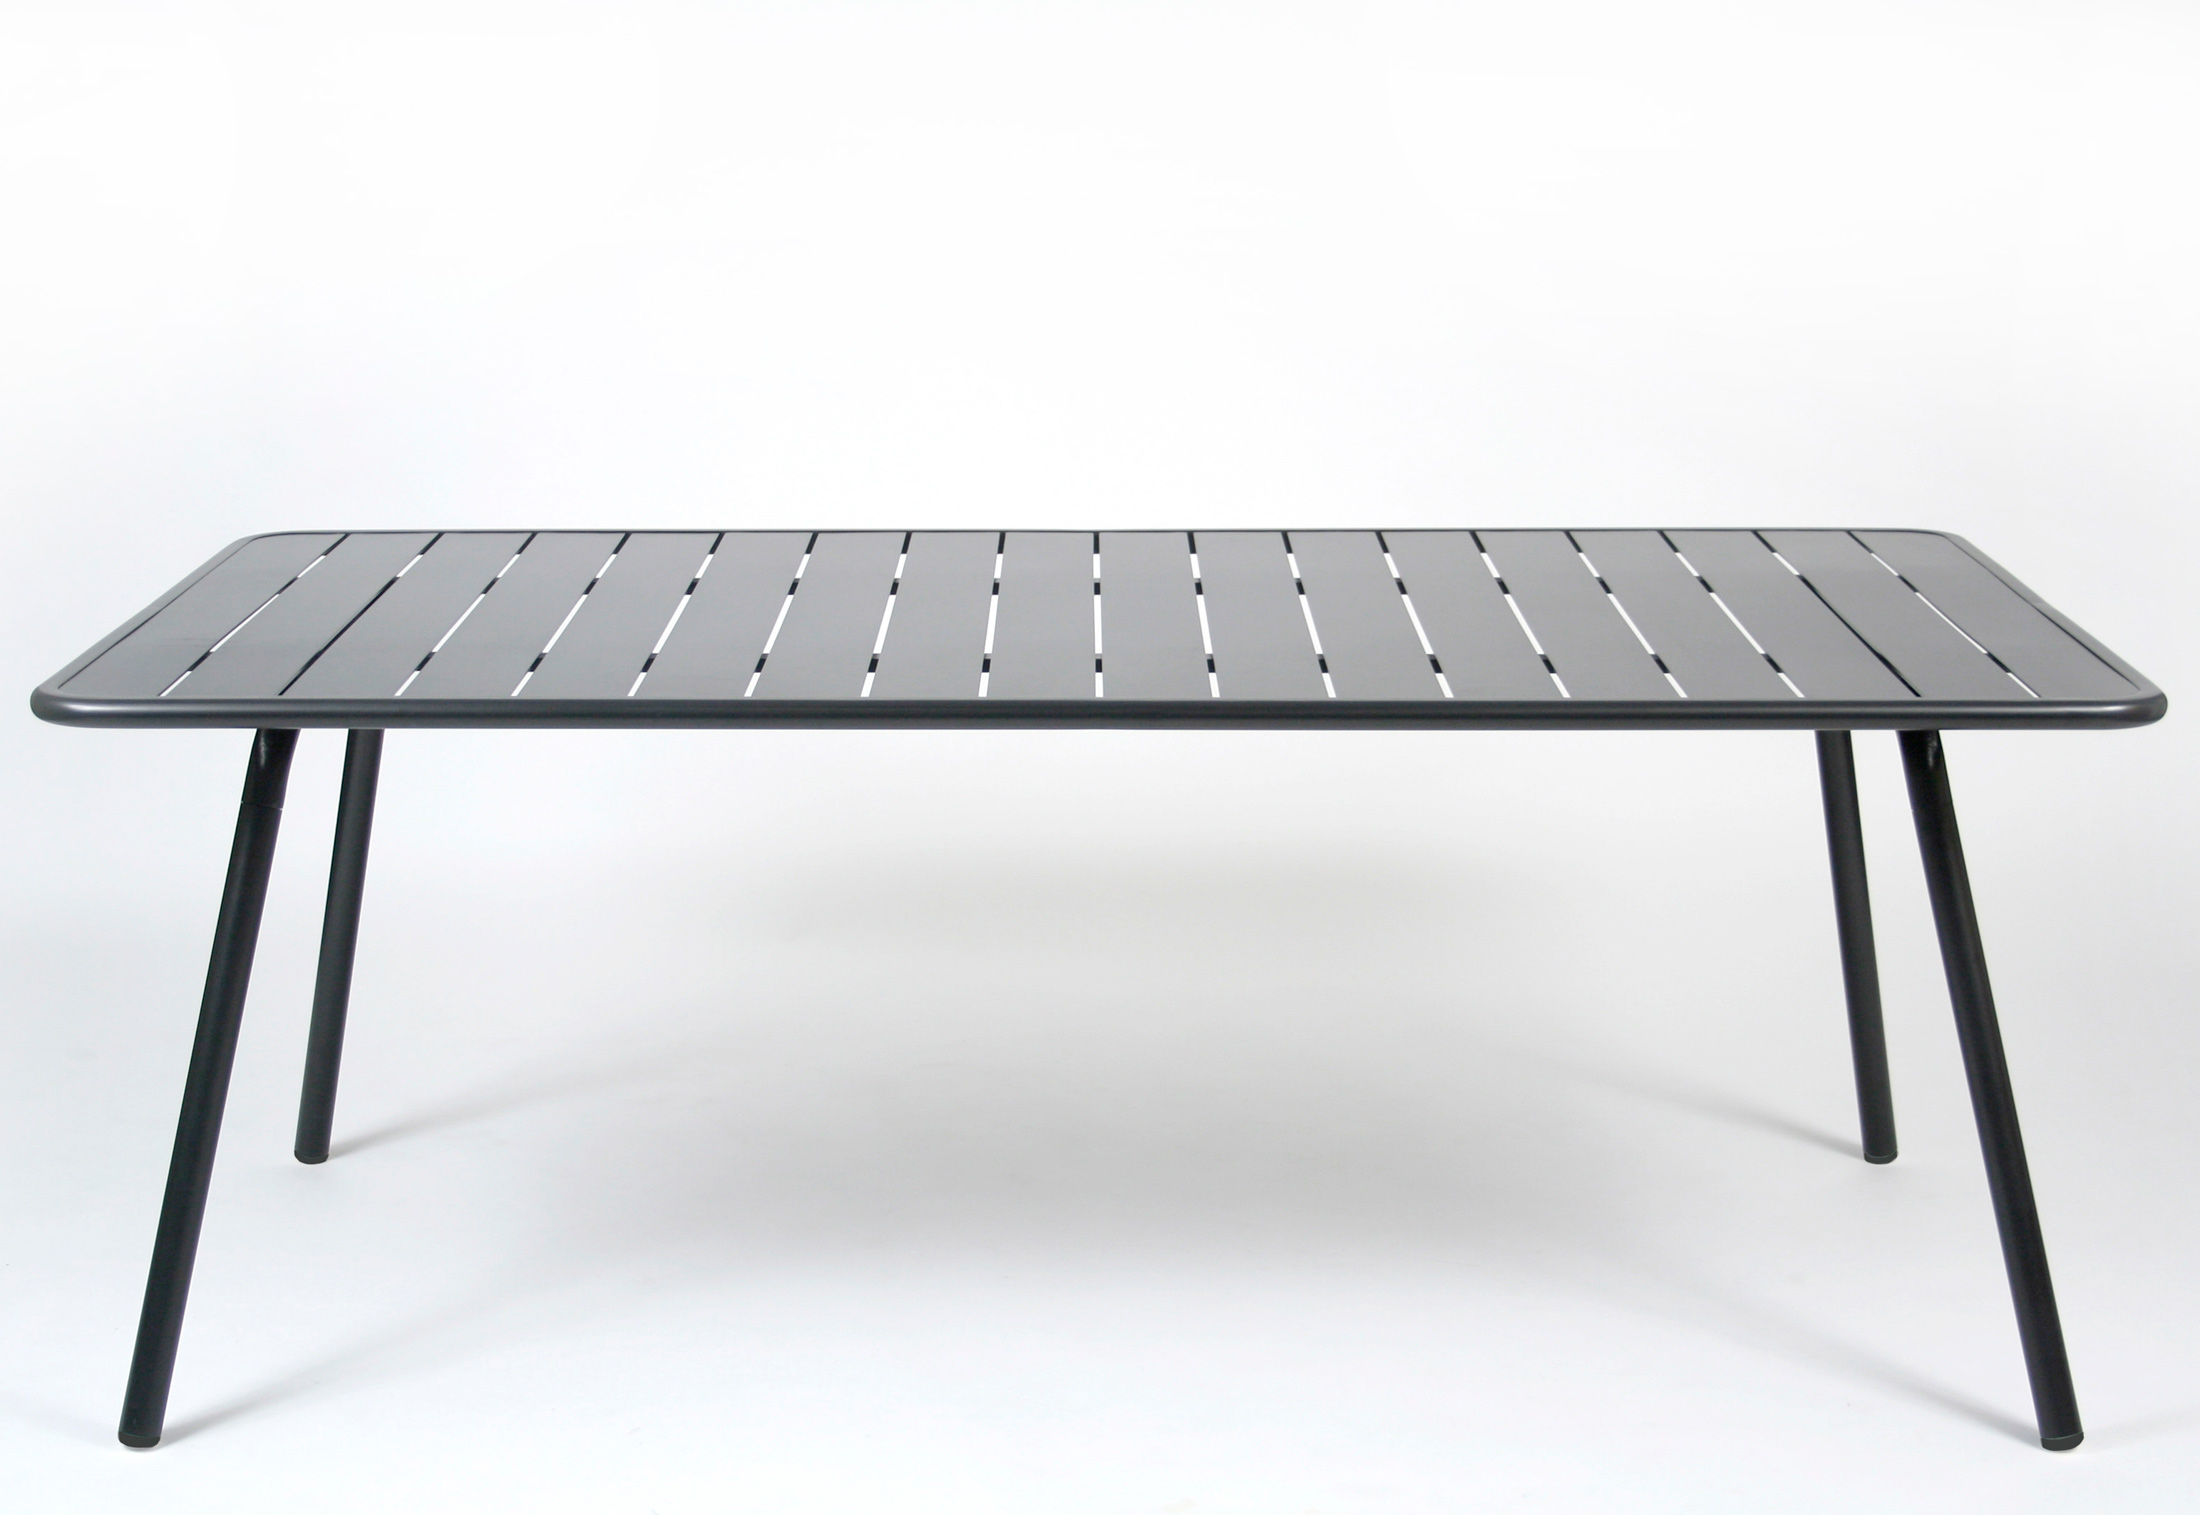 Table Luxembourg Luxembourg Table 207x100 By Fermob Stylepark